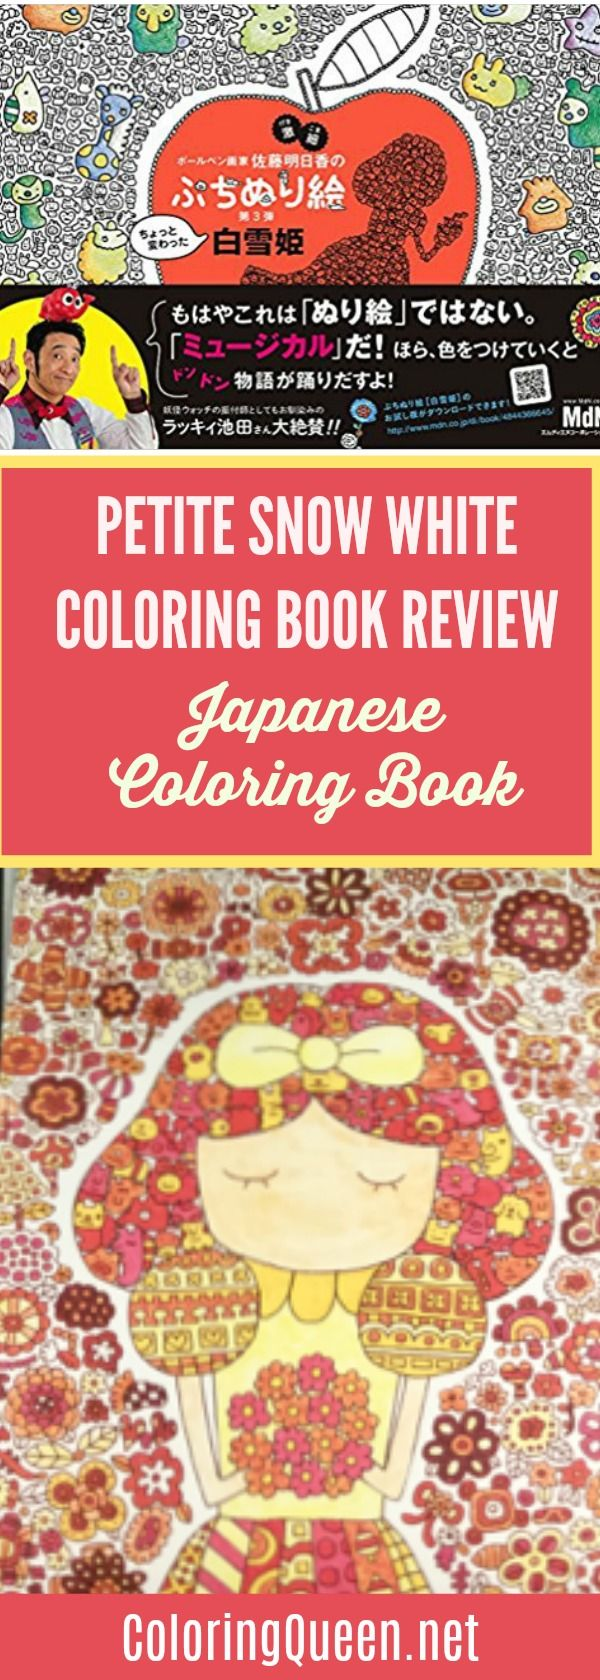 The coloring book analysis - Petite Picture Snow White Princess Coloring Book Review